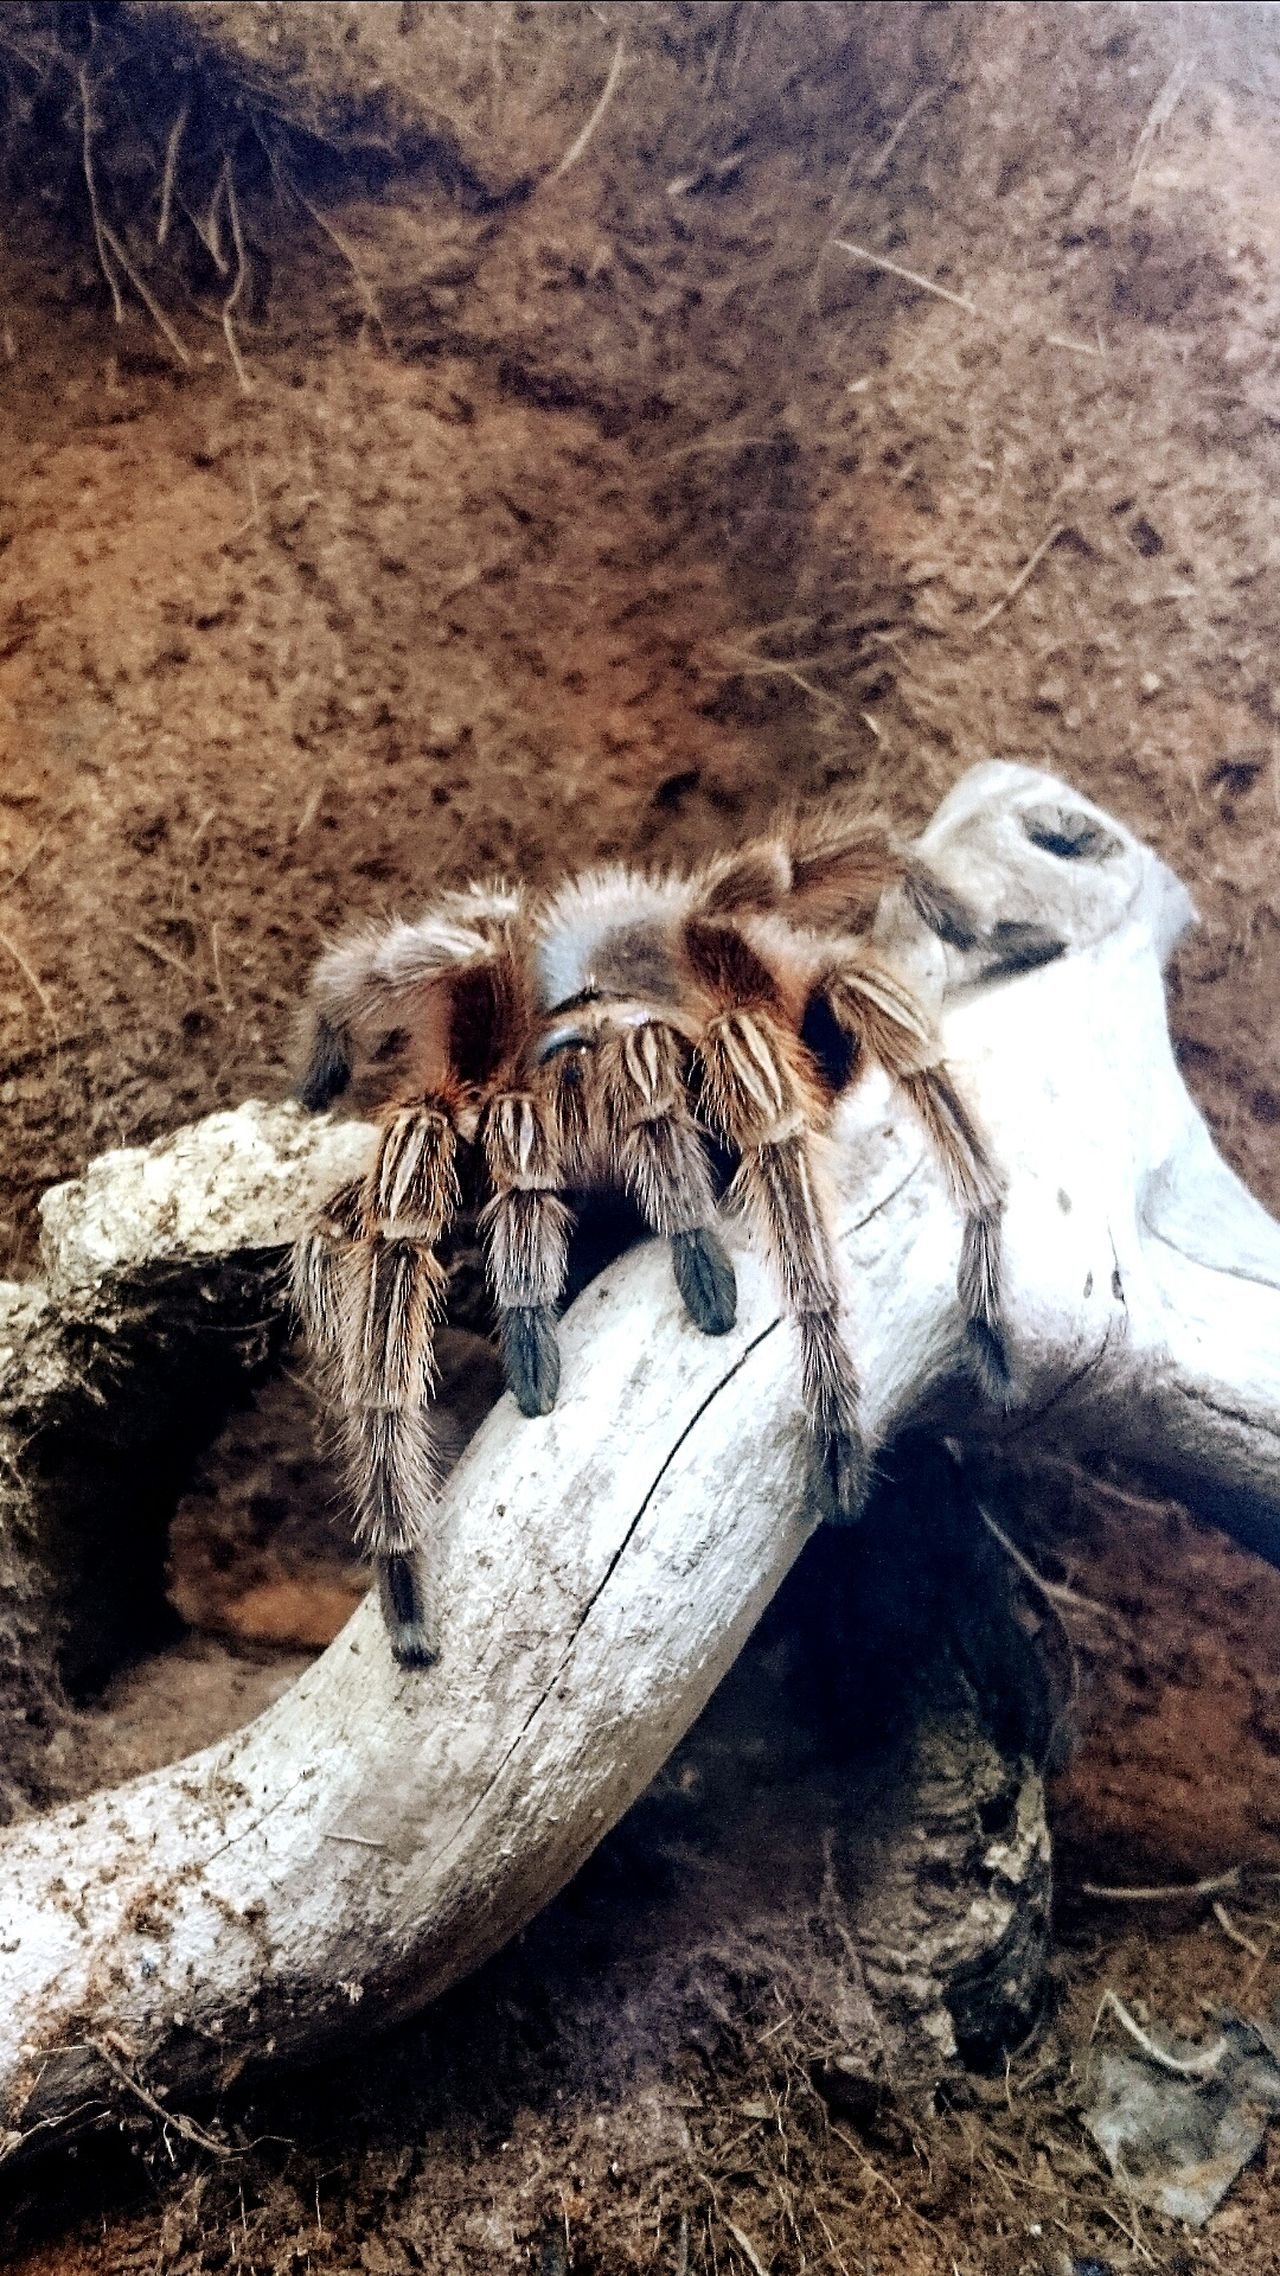 Spider Tarantula Check This Out Blueplanet Blueplanetaquarium